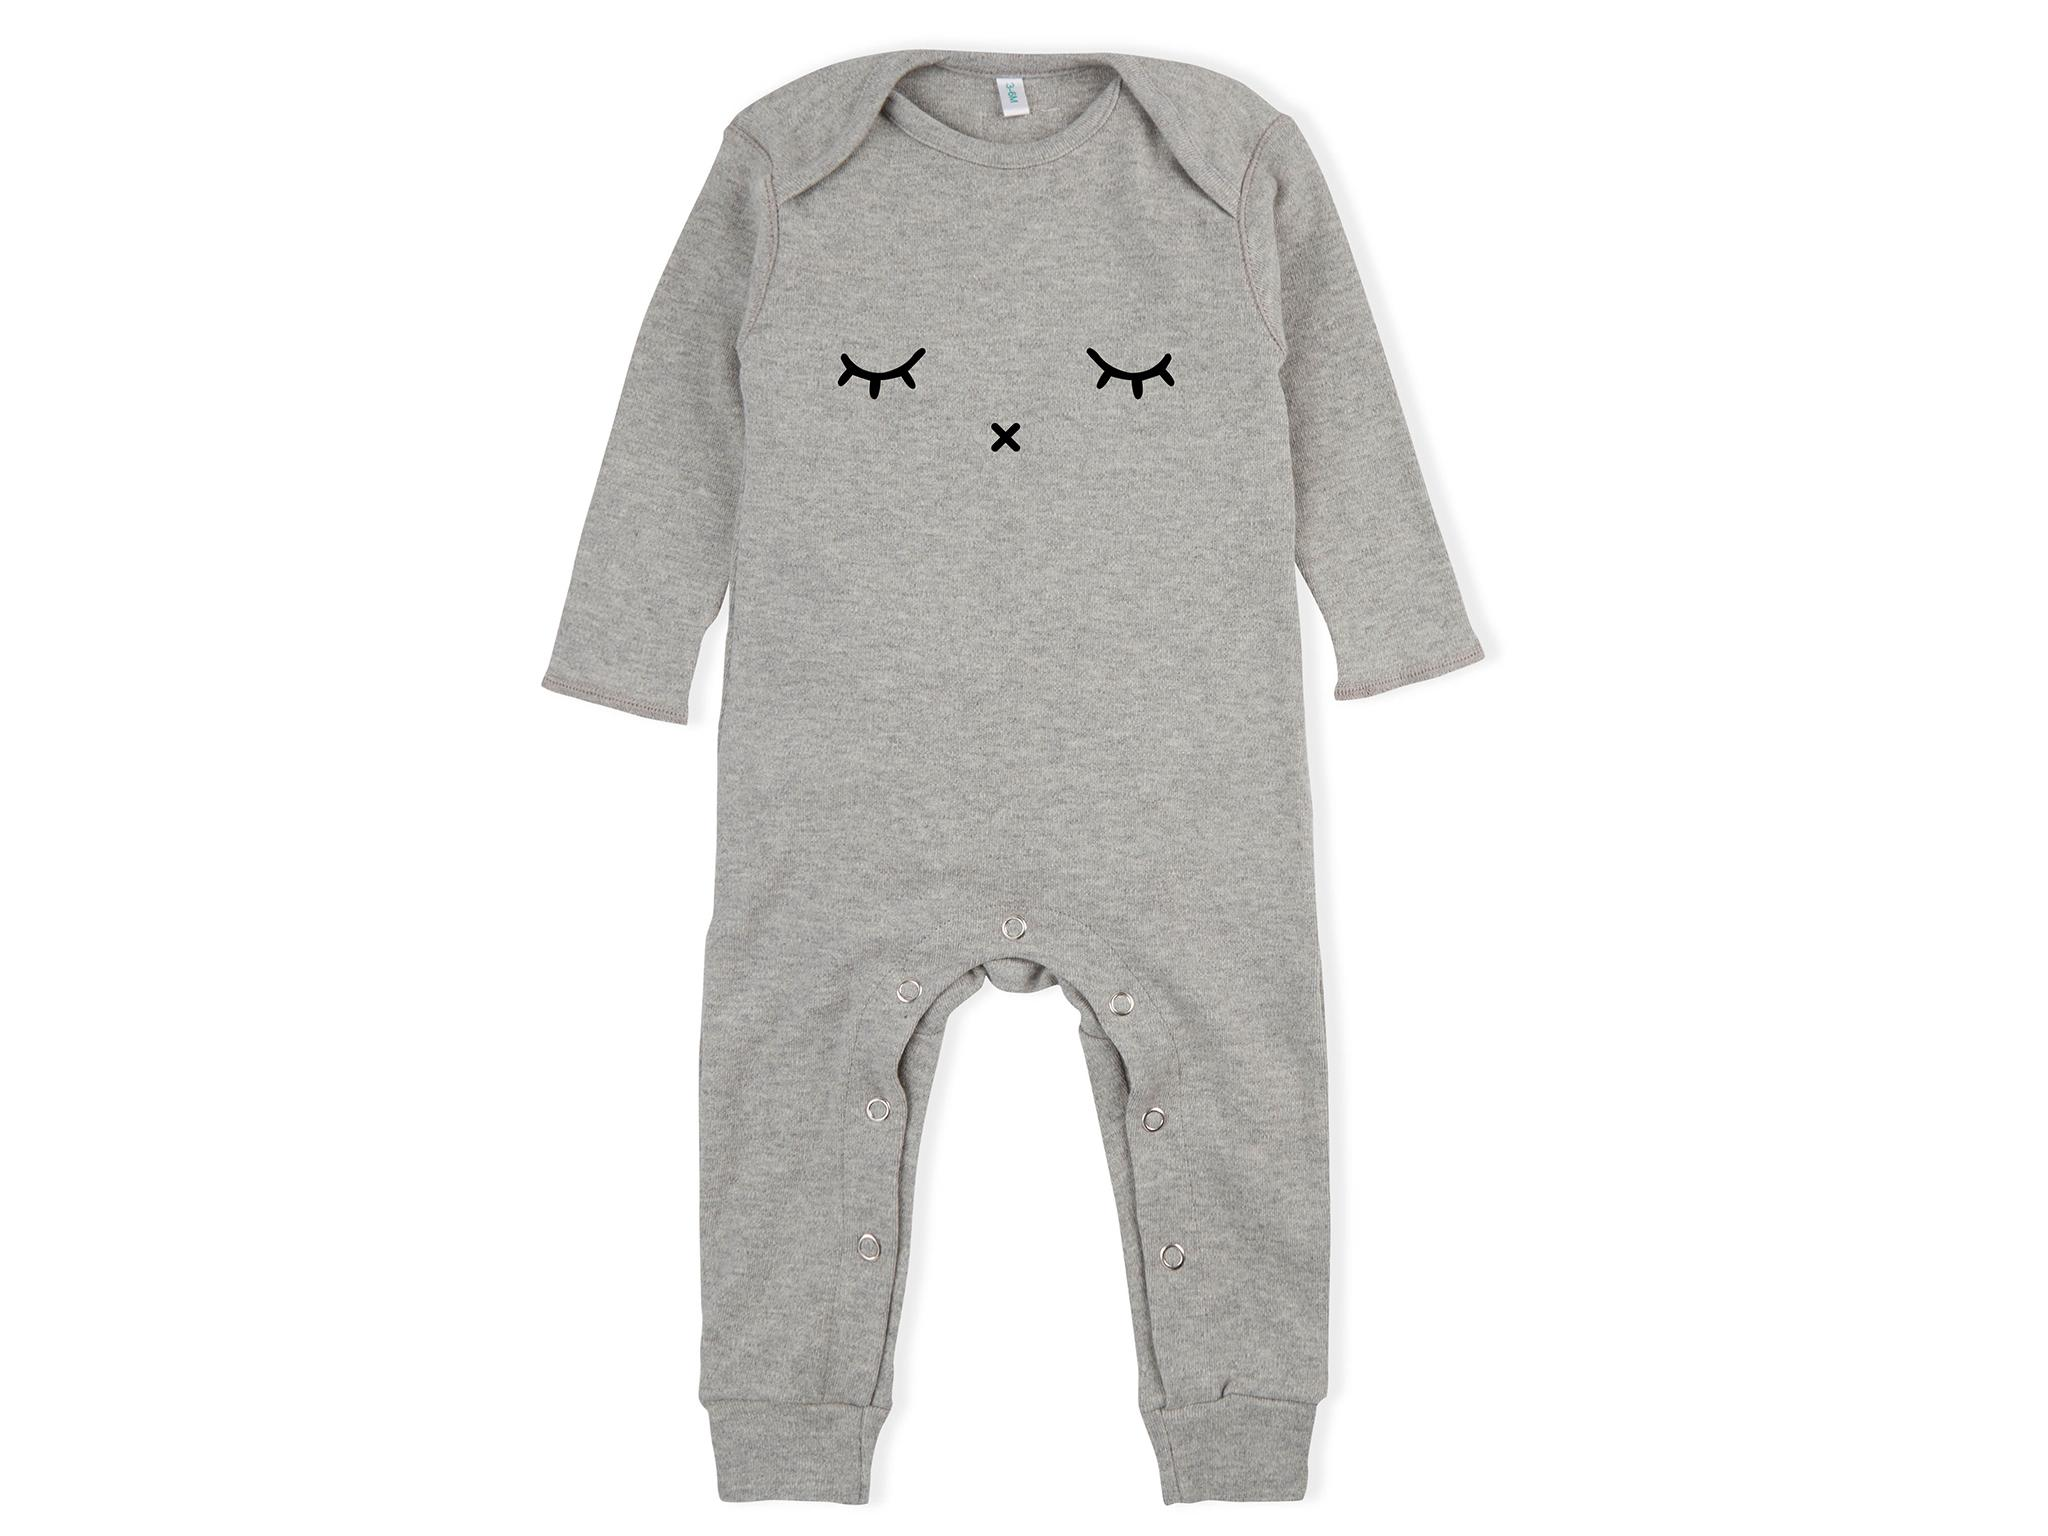 10 best brands for gender-neutral baby clothes | The Independent